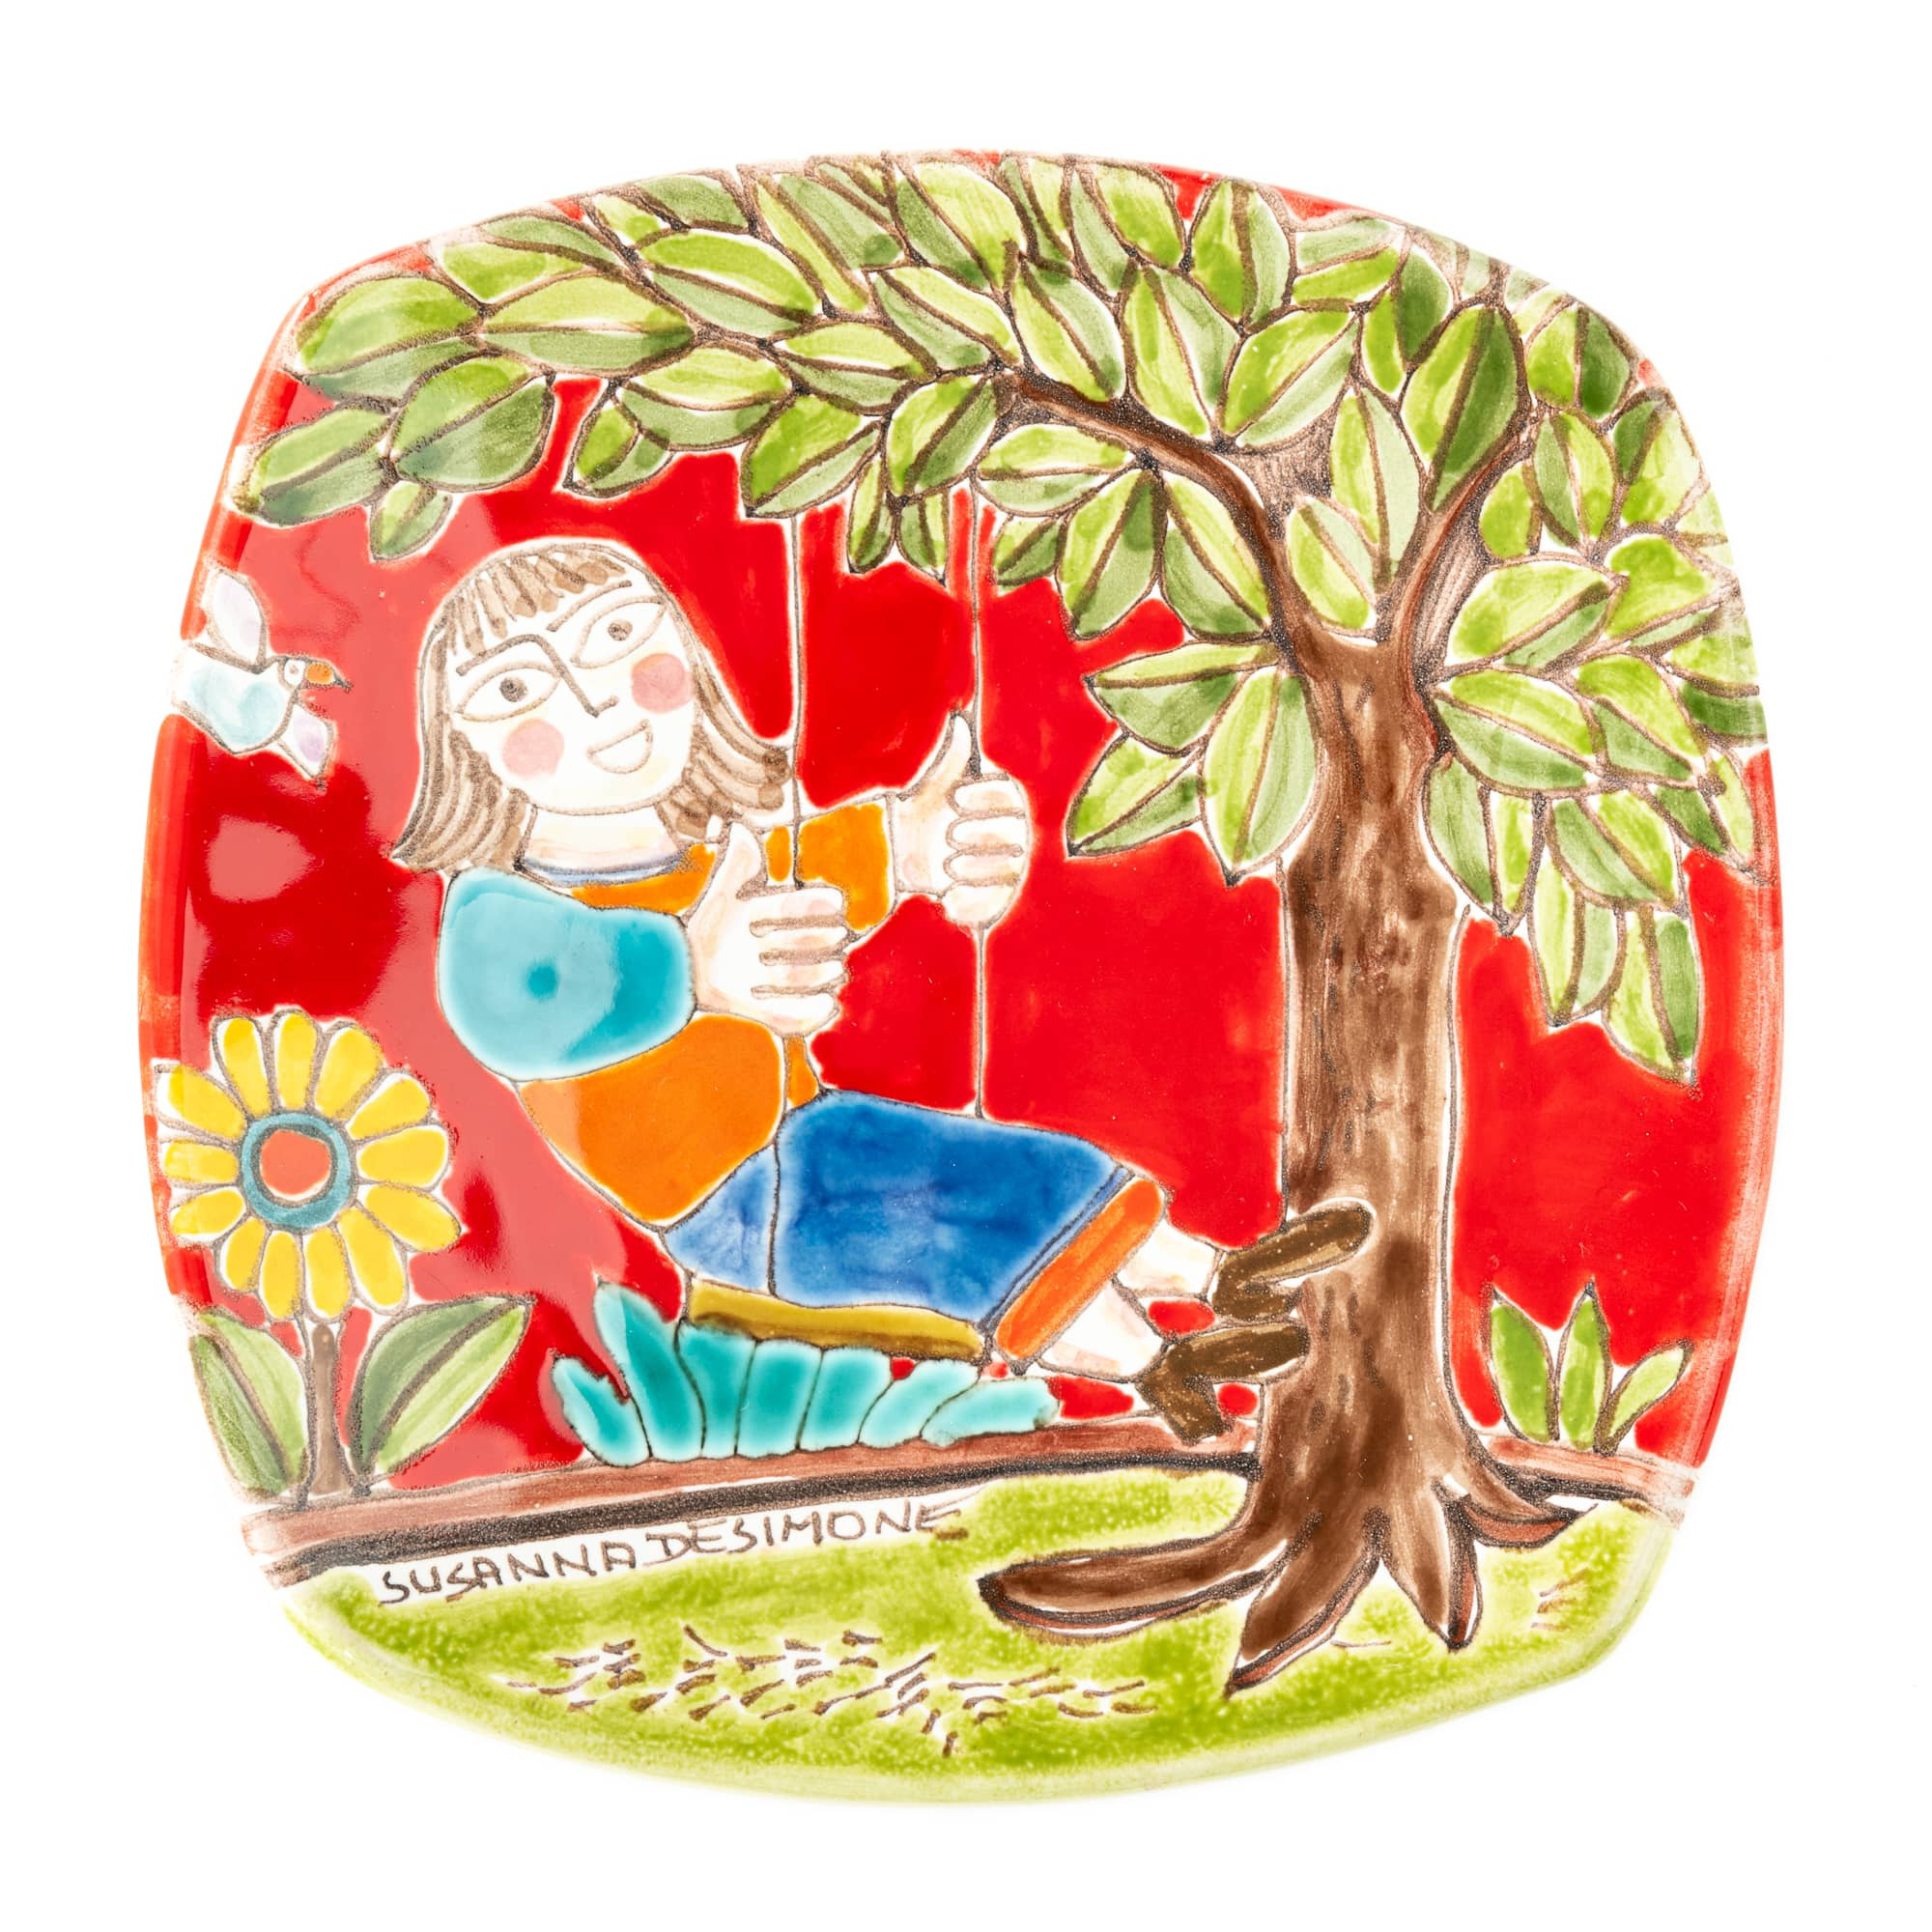 Girl Swinging Rounded Square Appetizer Plate